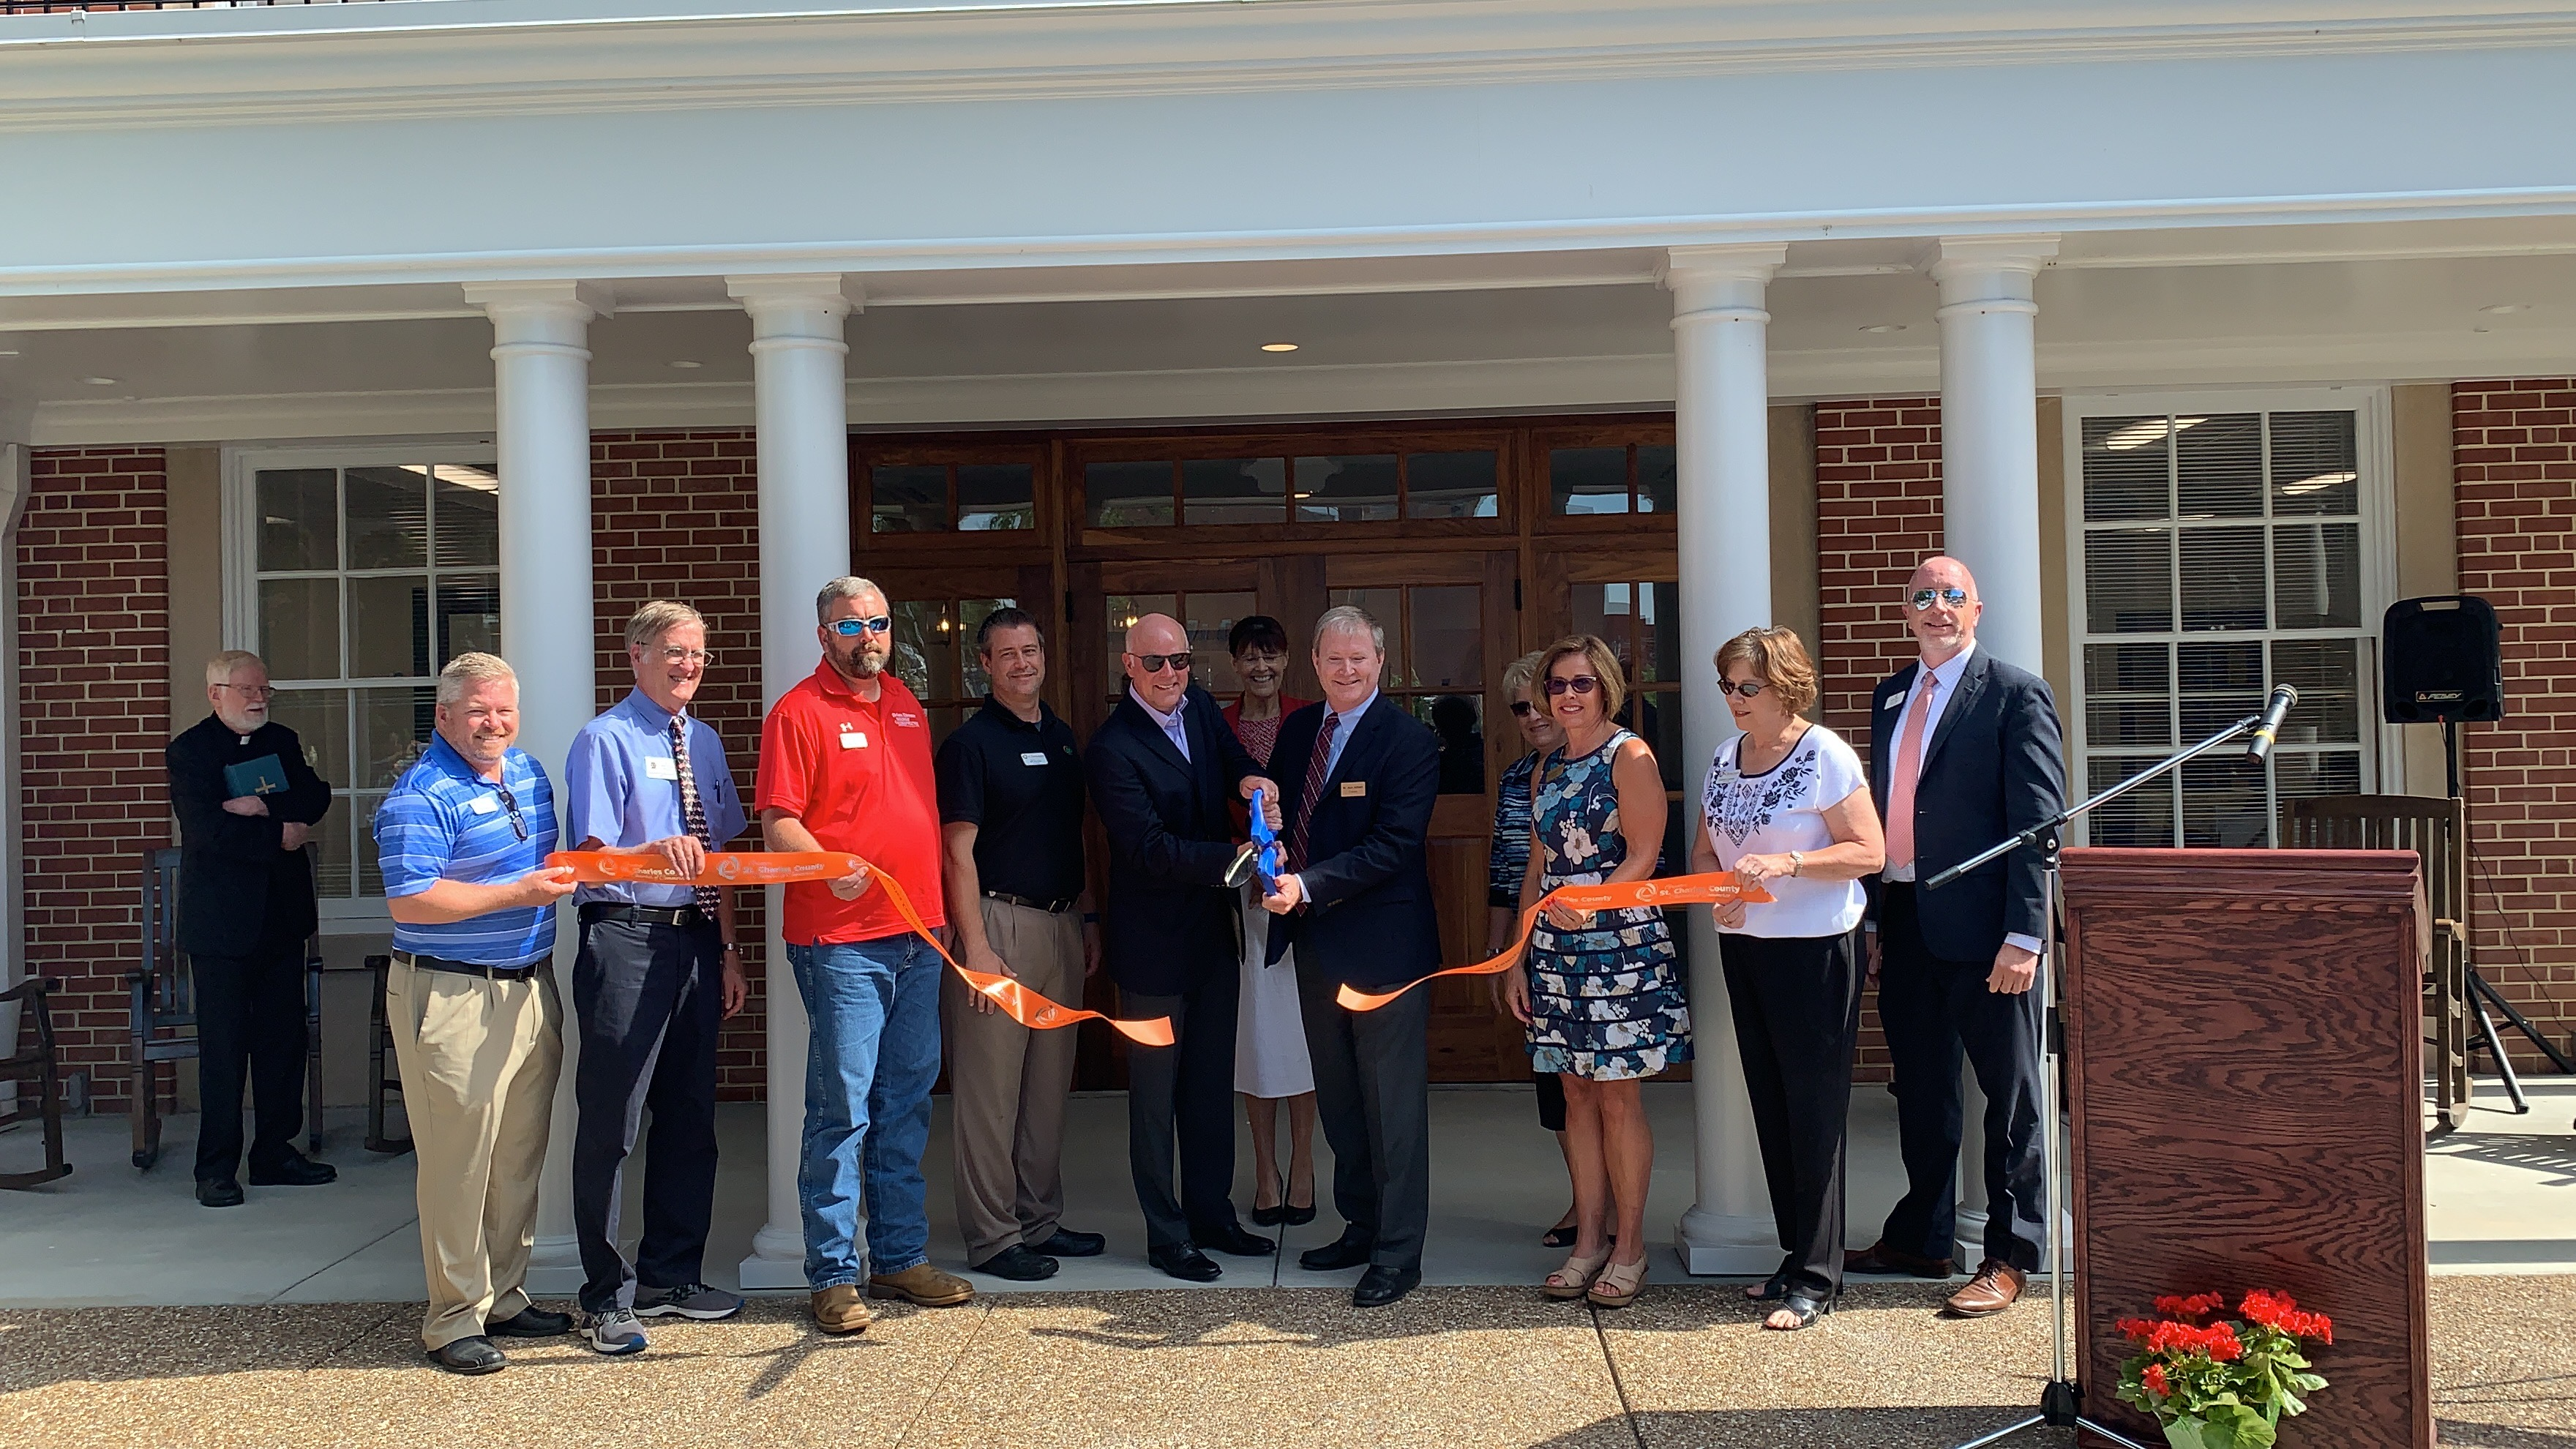 Image for Academy of the Sacred Heart Celebrates New Entrance with Ribbon Cutting Dedication